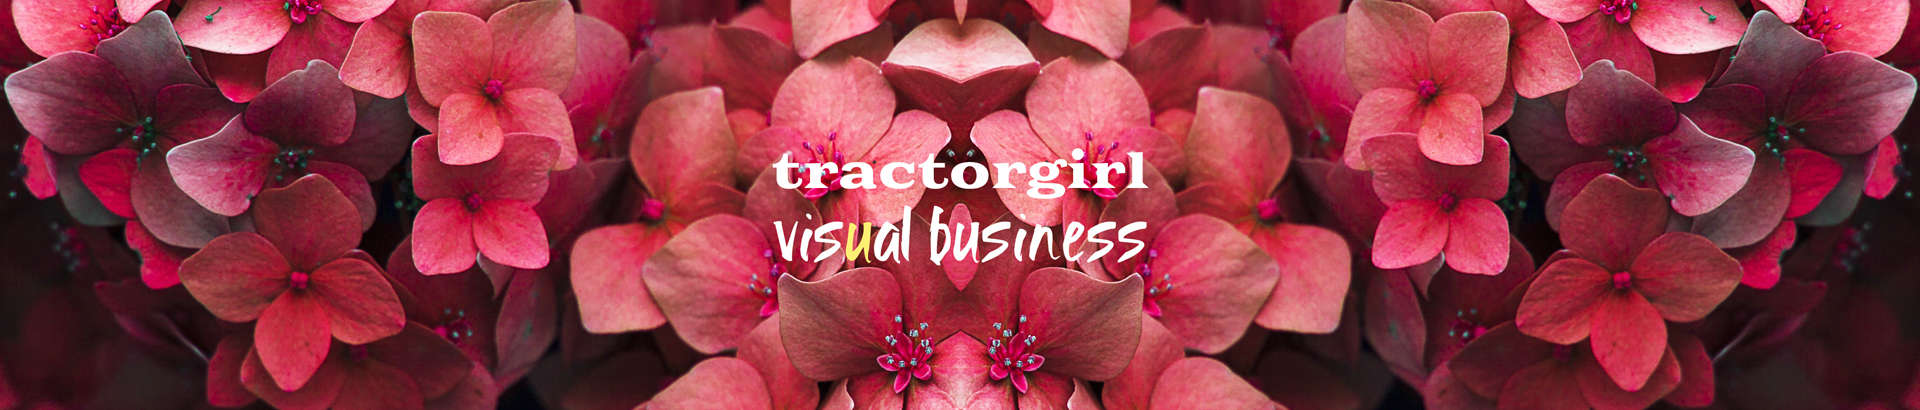 tractorgirl: visual business: small business branding